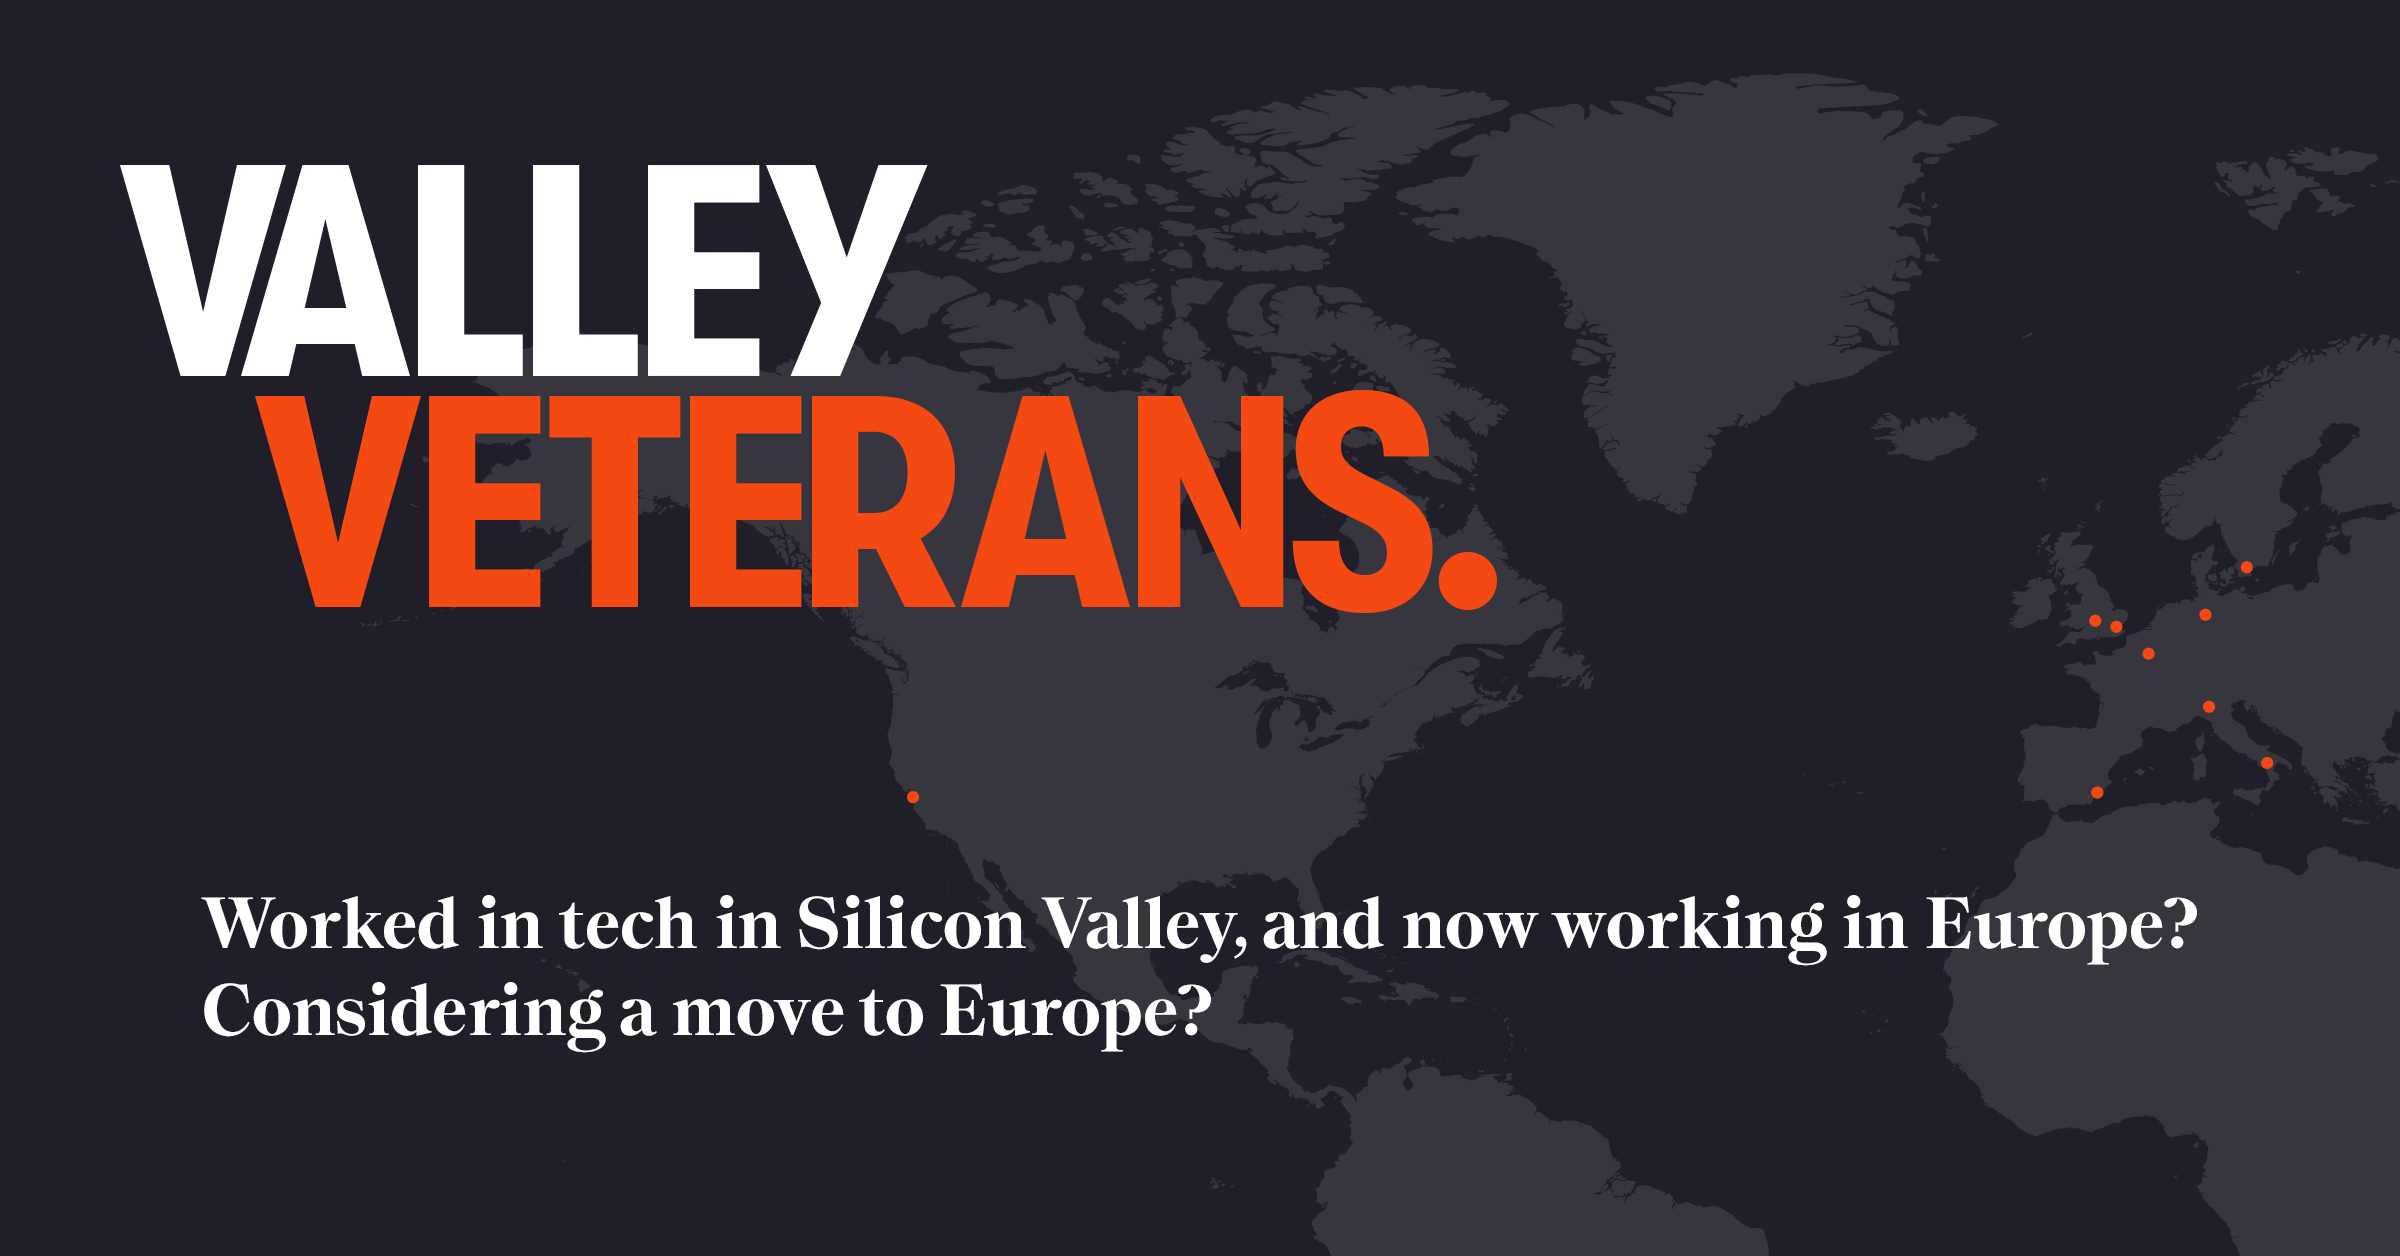 Join the Valley Veterans Community